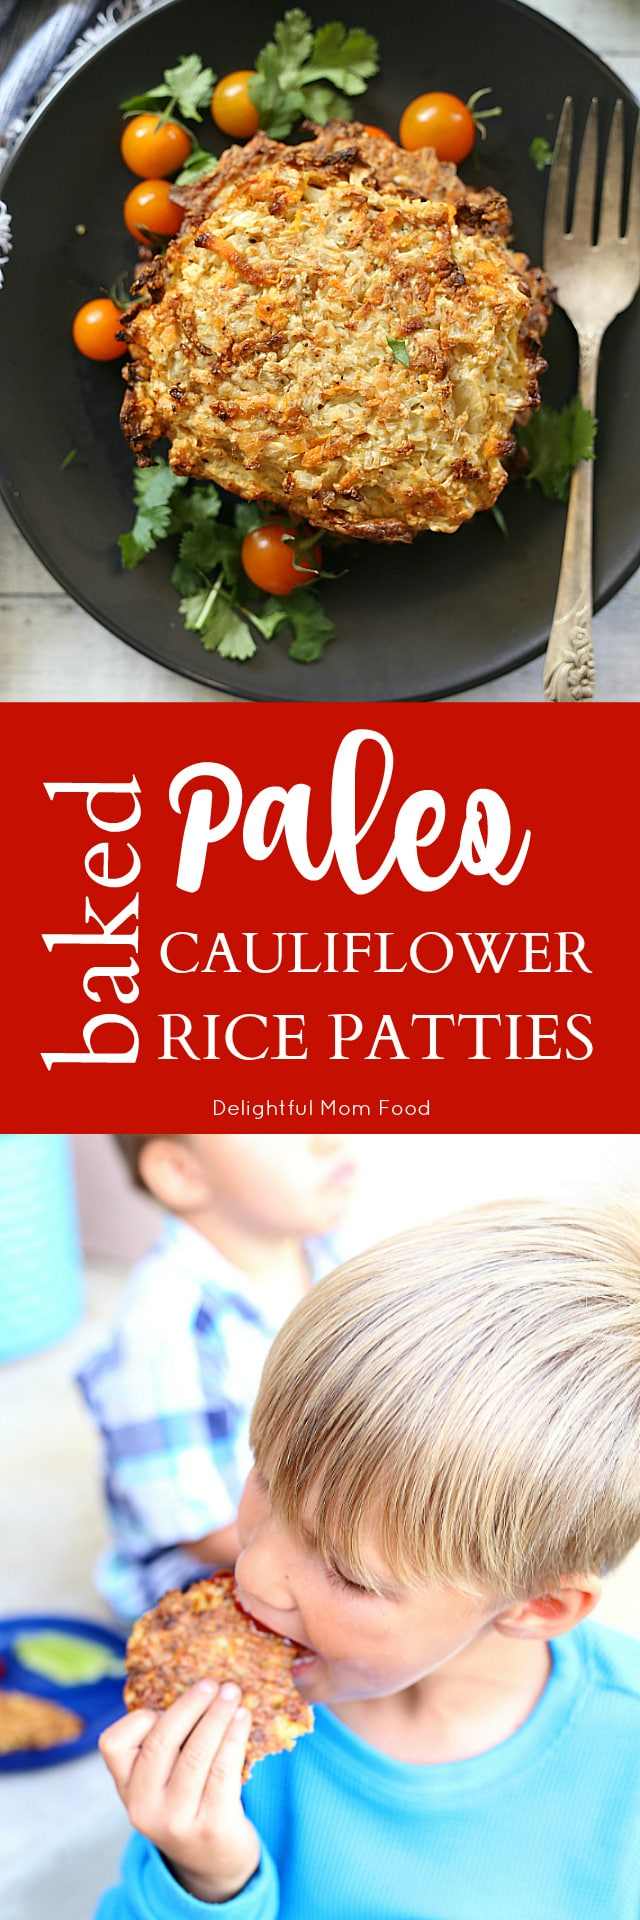 Cauliflower rice paleo fritters baked with carrots shreds, Parmesan cheese and tapioca flour for a healthy and easy vegetarian + gluten free sheet pan dinner or snack that tastes fried!